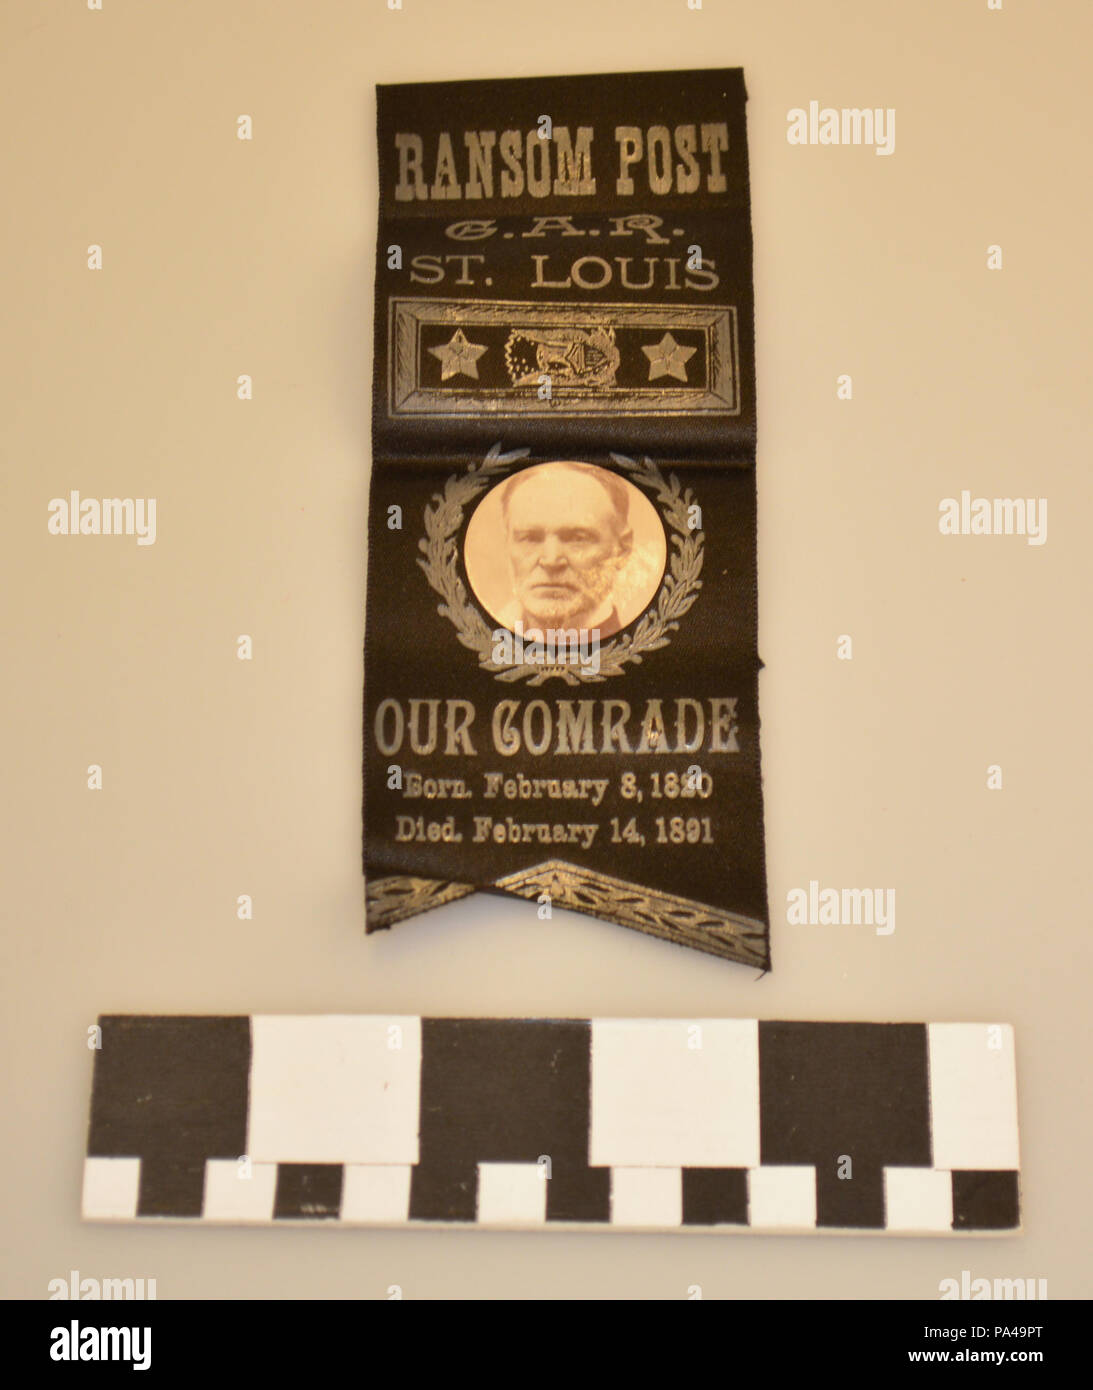 209 Black Grand Army of the Republic Ribbon Badge Memorializing William T. Sherman - Stock Image